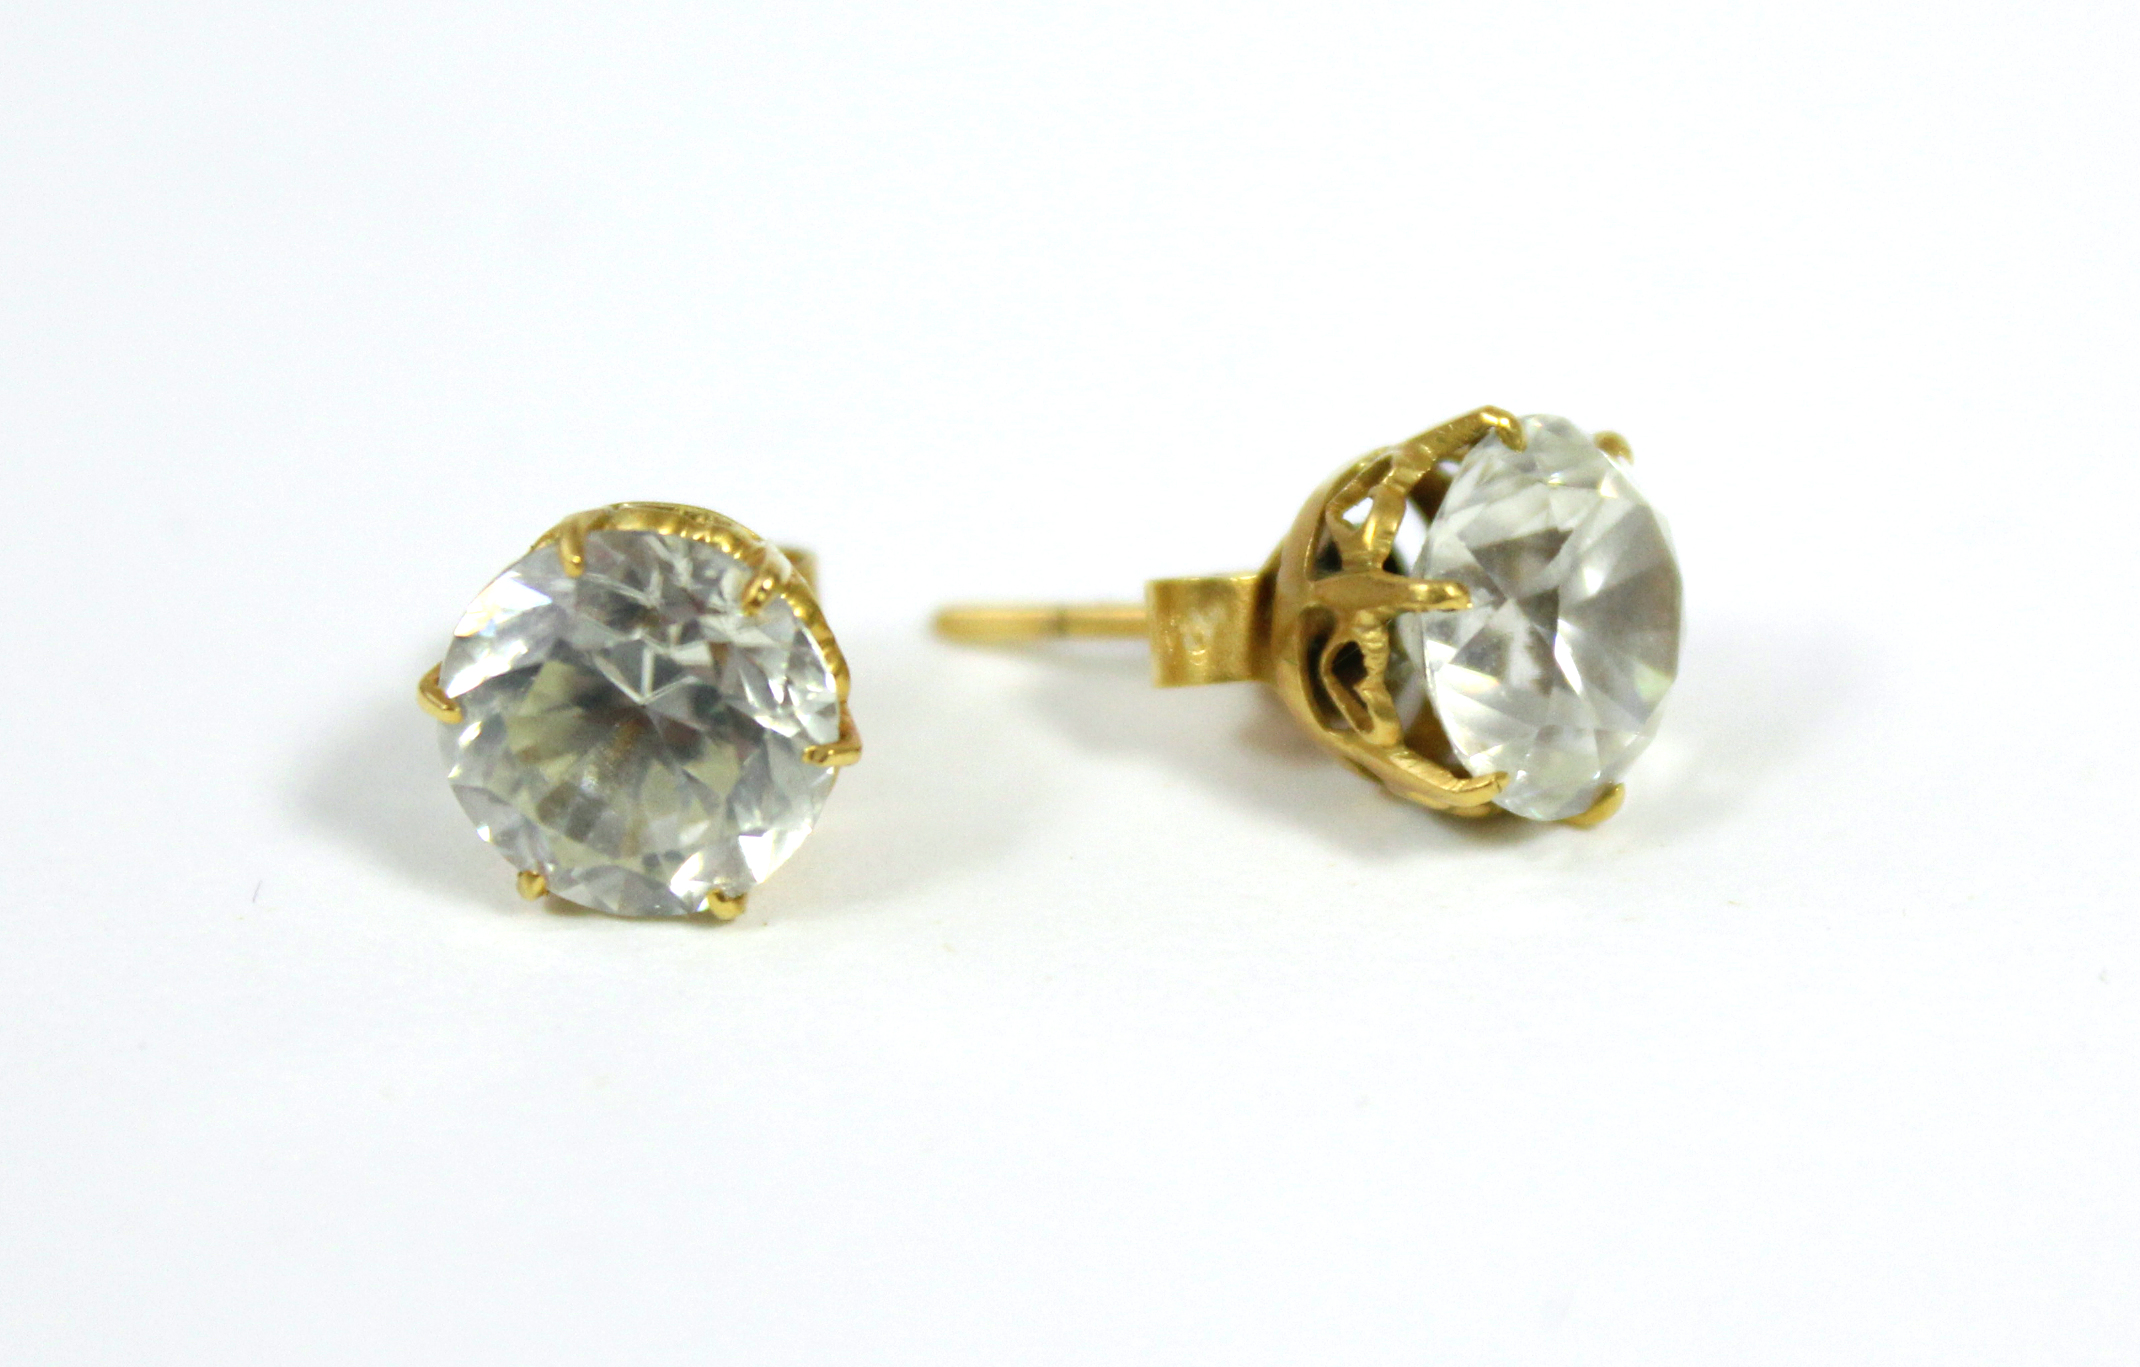 Lot 41 - A pair of white topaz ear studs.